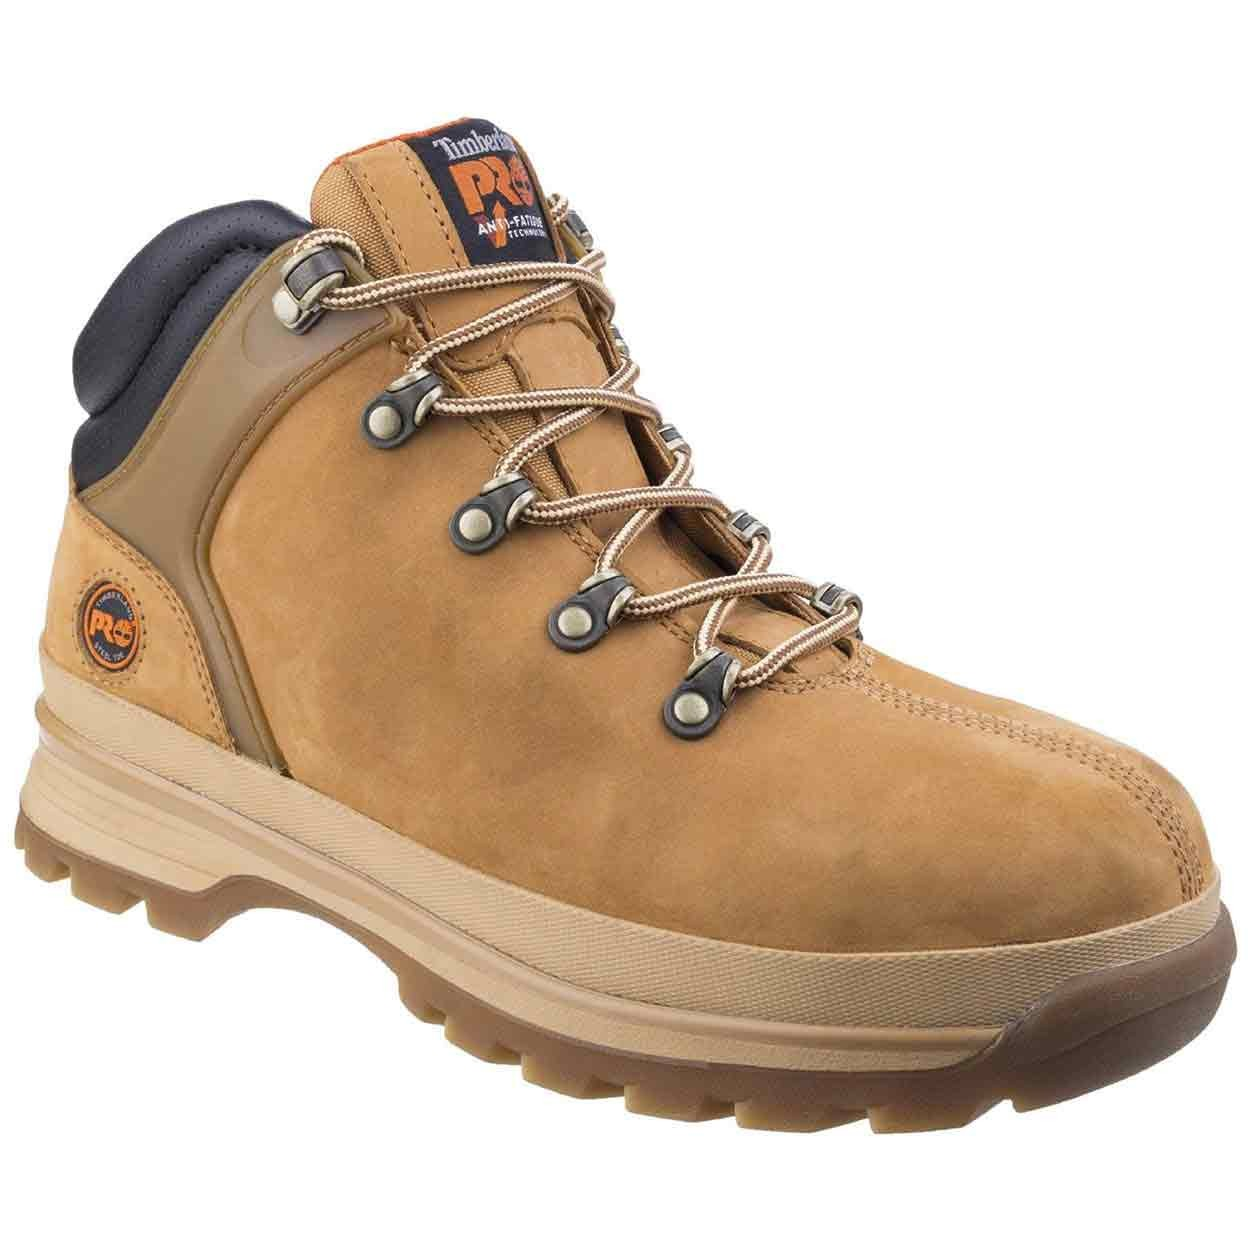 774abecd891 Timberland Pro Splitrock XT - Standard Safety Boots - Mens Safety ...